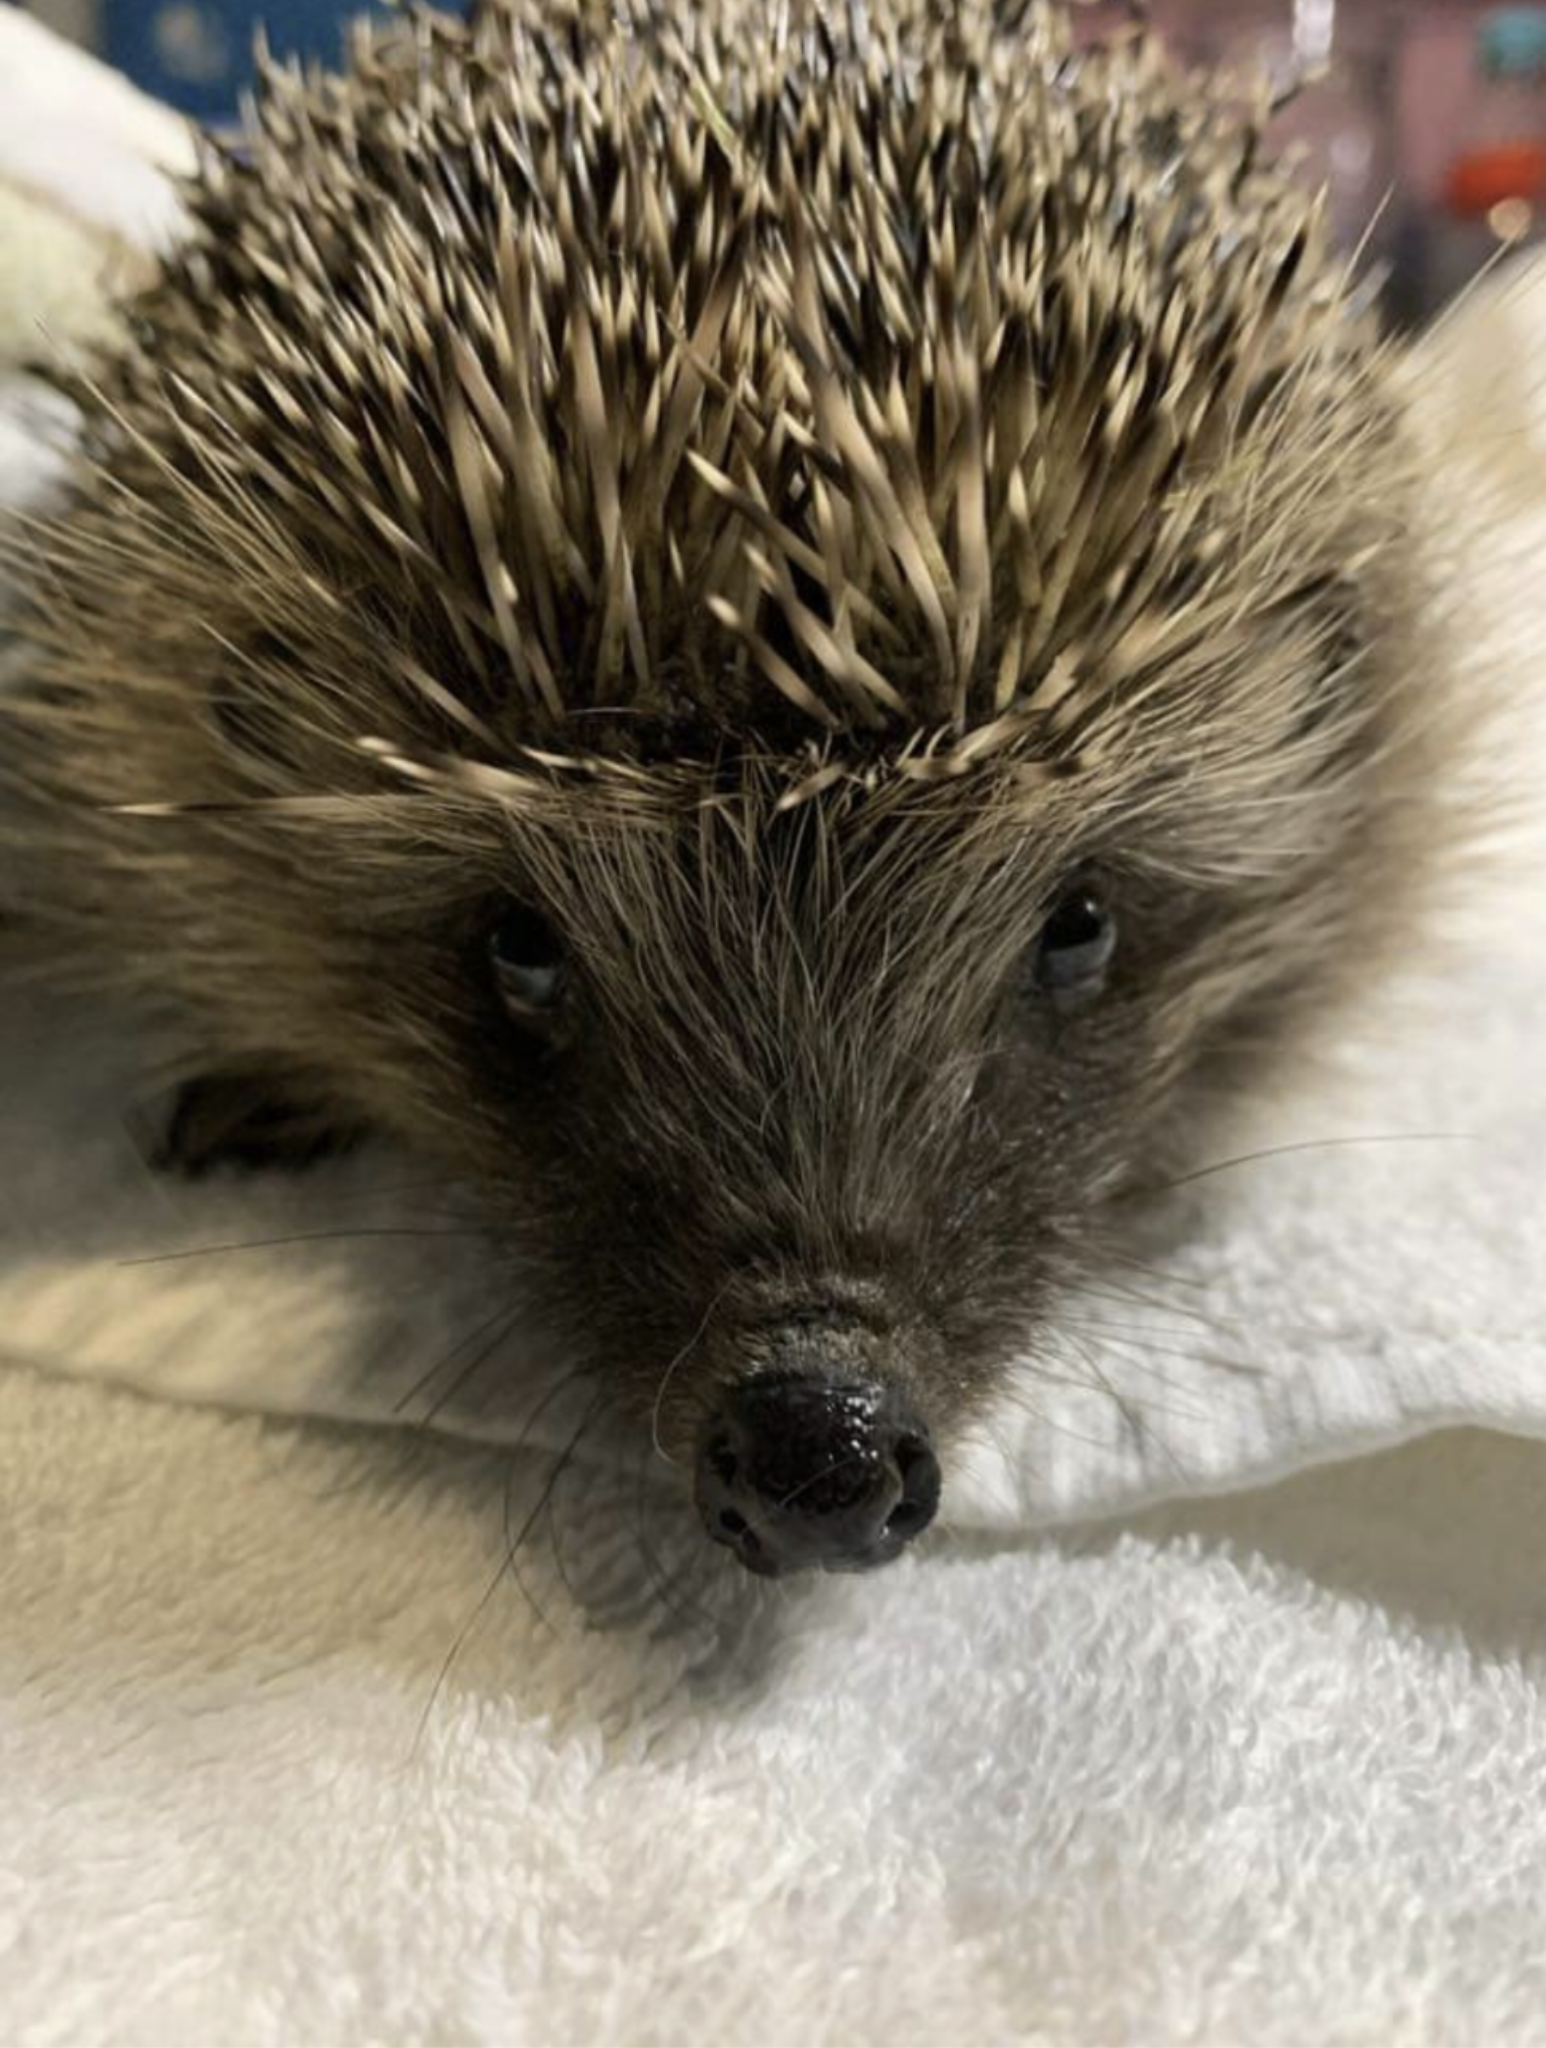 Save Our Hedgehogs! Wildlife Rescues Warn of Danger to Hedgehogs from Strimmers as Peak Gardening Season Arrives